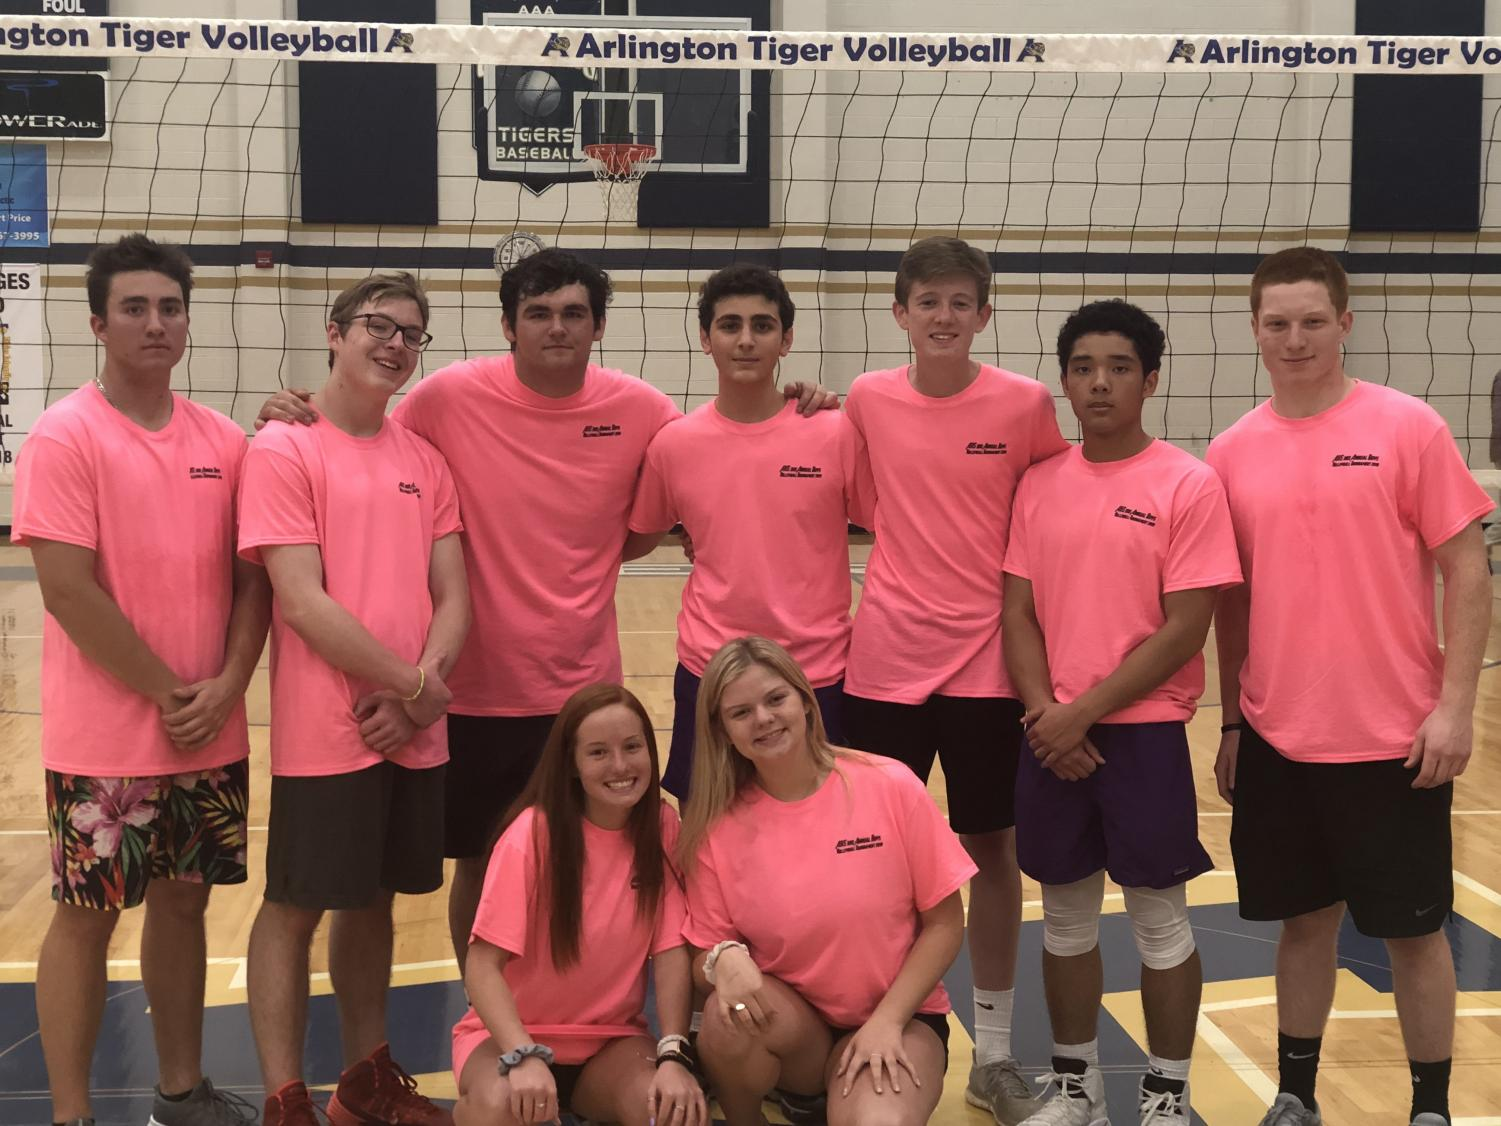 The Boys Volleyball Players